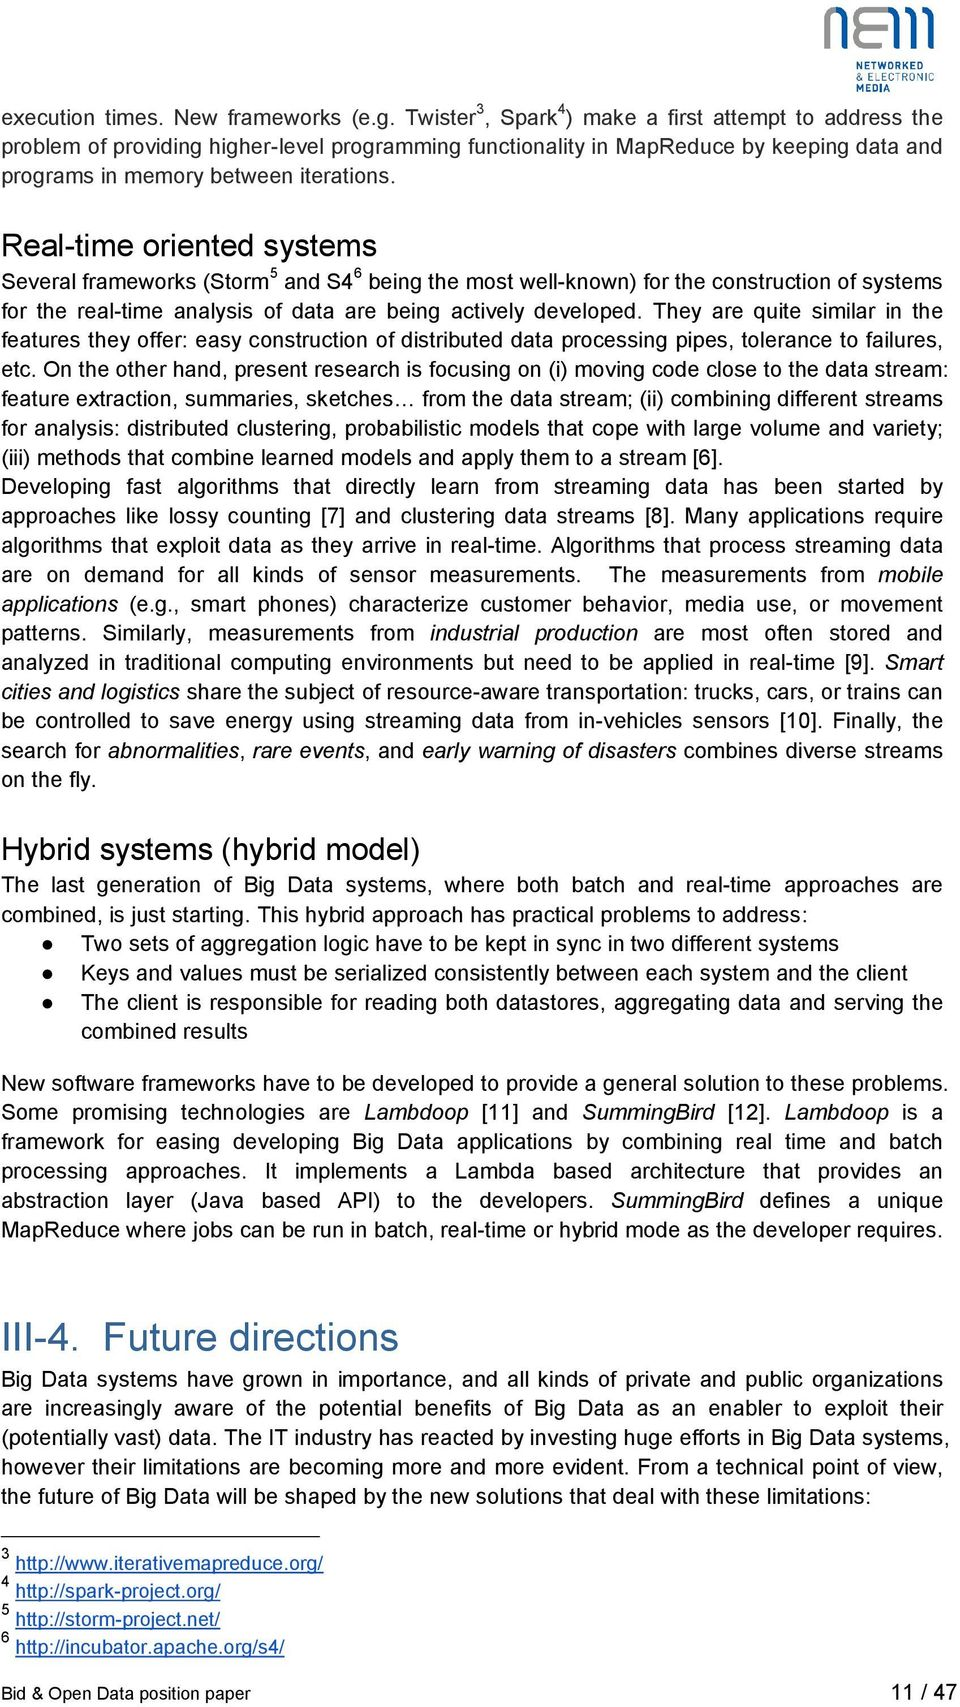 Real-time oriented systems 5 6 Several frameworks (Storm and S4 being the most well-known) for the construction of systems for the real-time analysis of data are being actively developed.